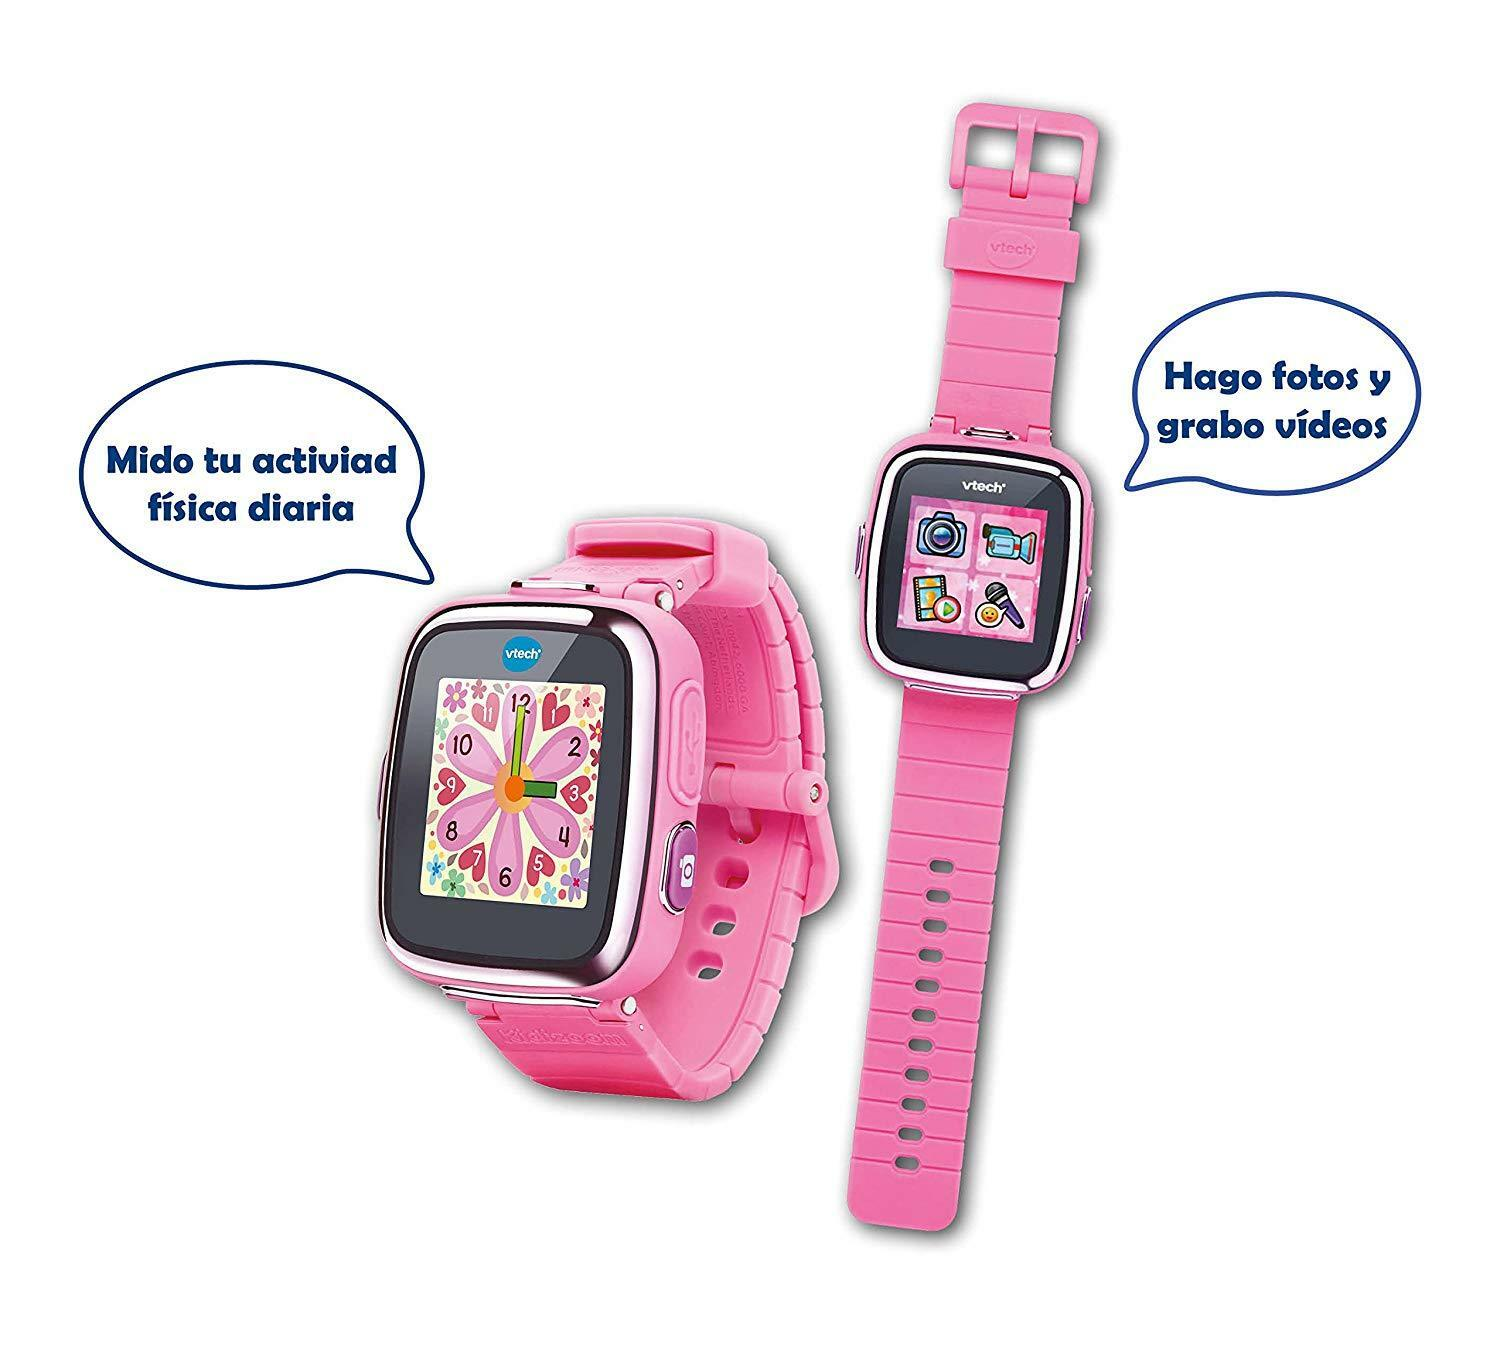 VTech Kidizoom Reloj Inteligente Interactivo DX Fotos y Video Version Española